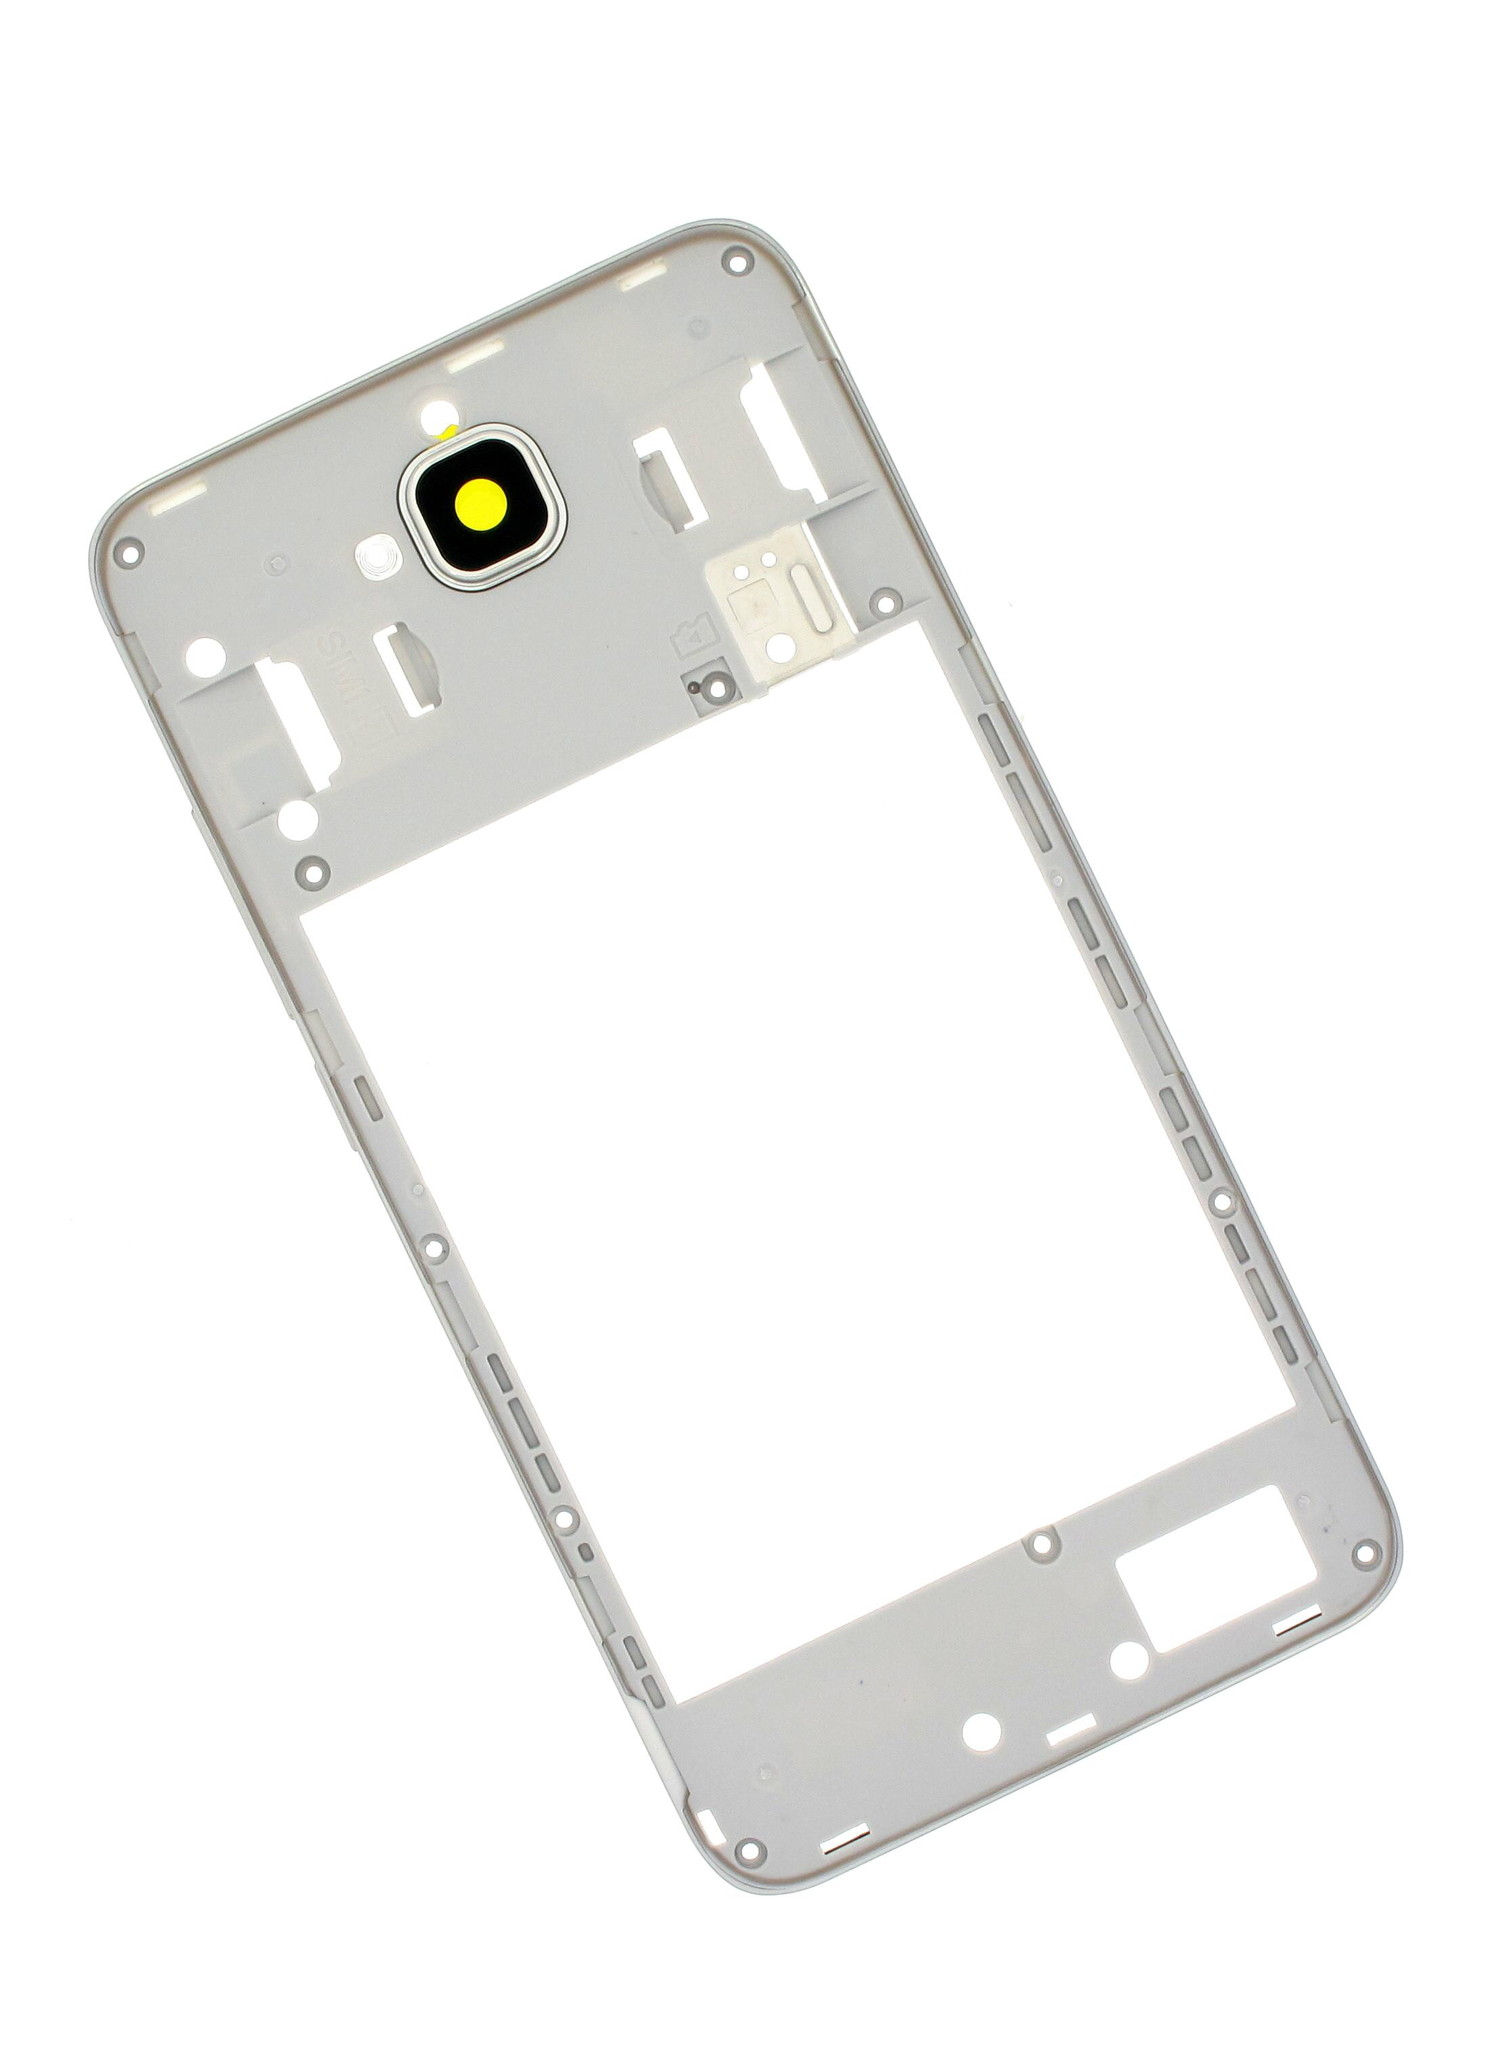 Huawei Y6 Pro 4G (TIT-AL00) Middle Cover, White, 97070LBH